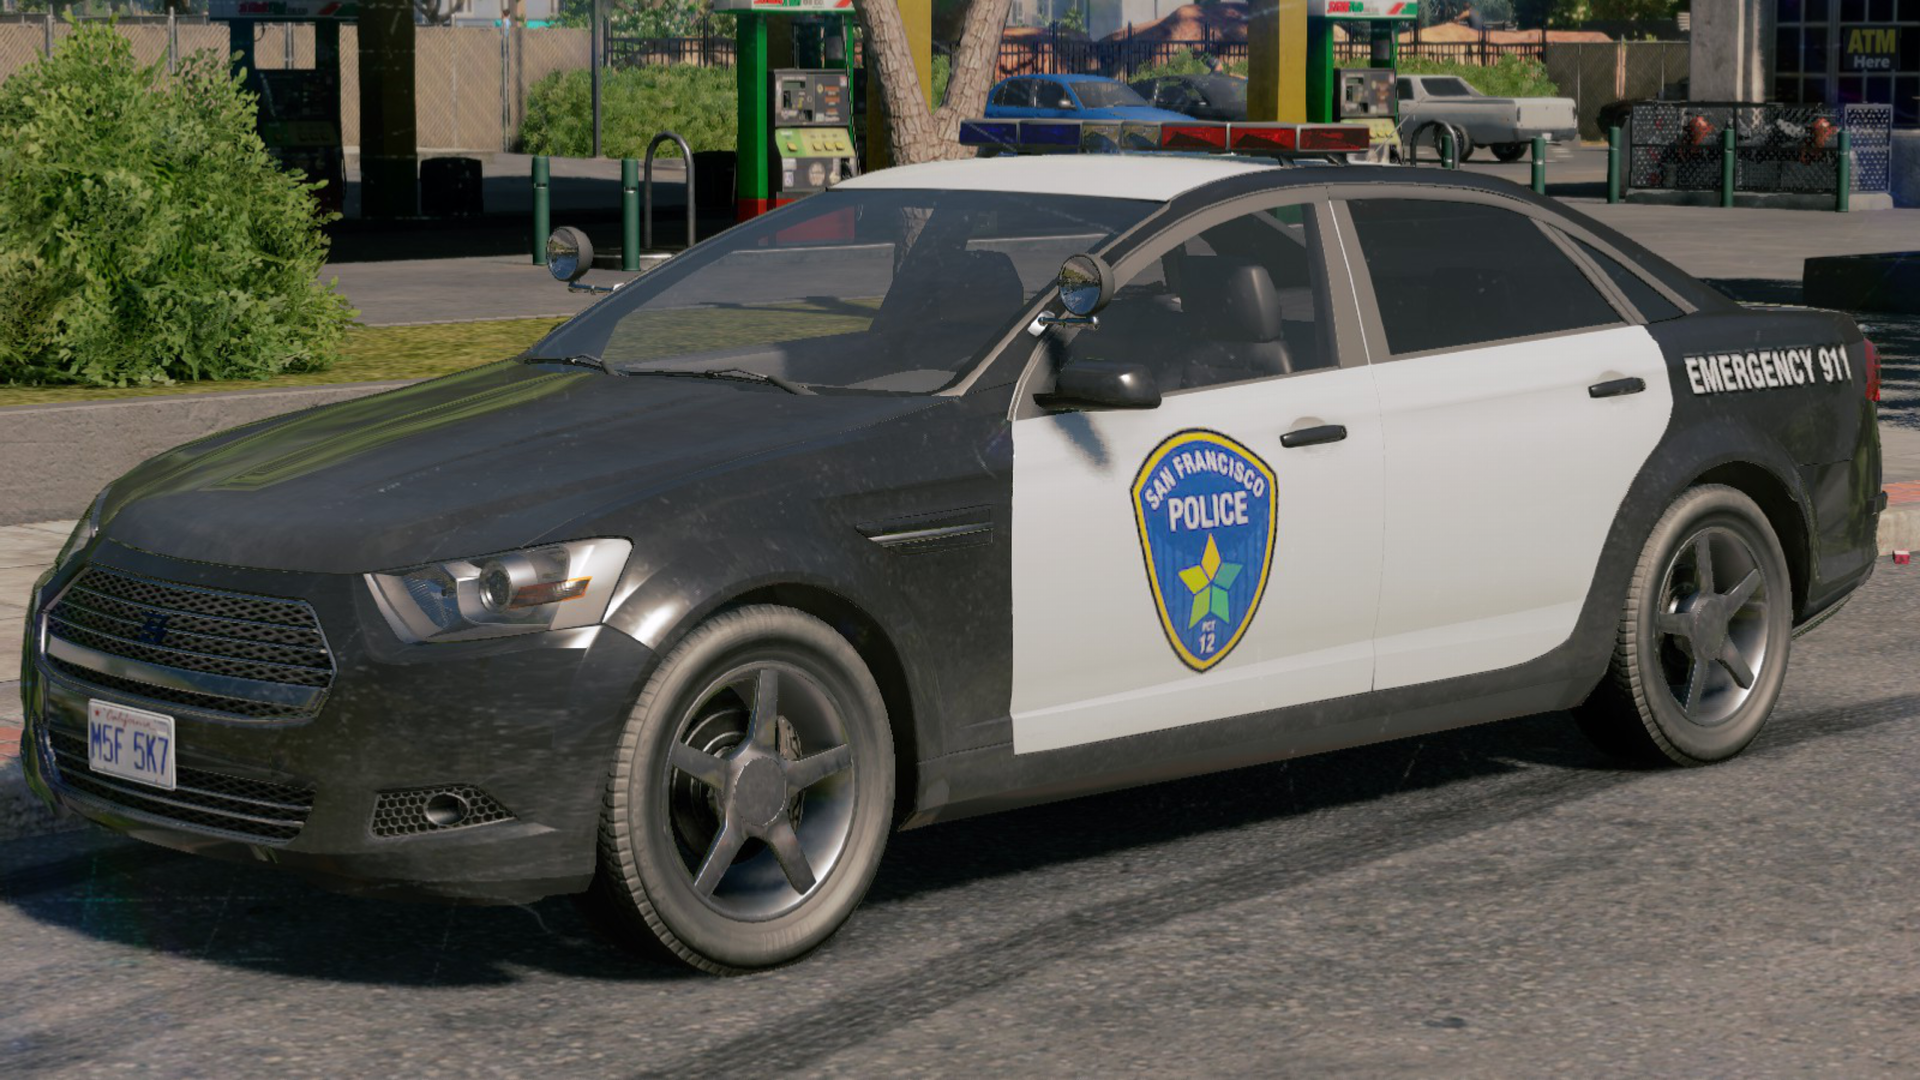 San Francisco Police Department | Watch Dogs Wiki | FANDOM powered